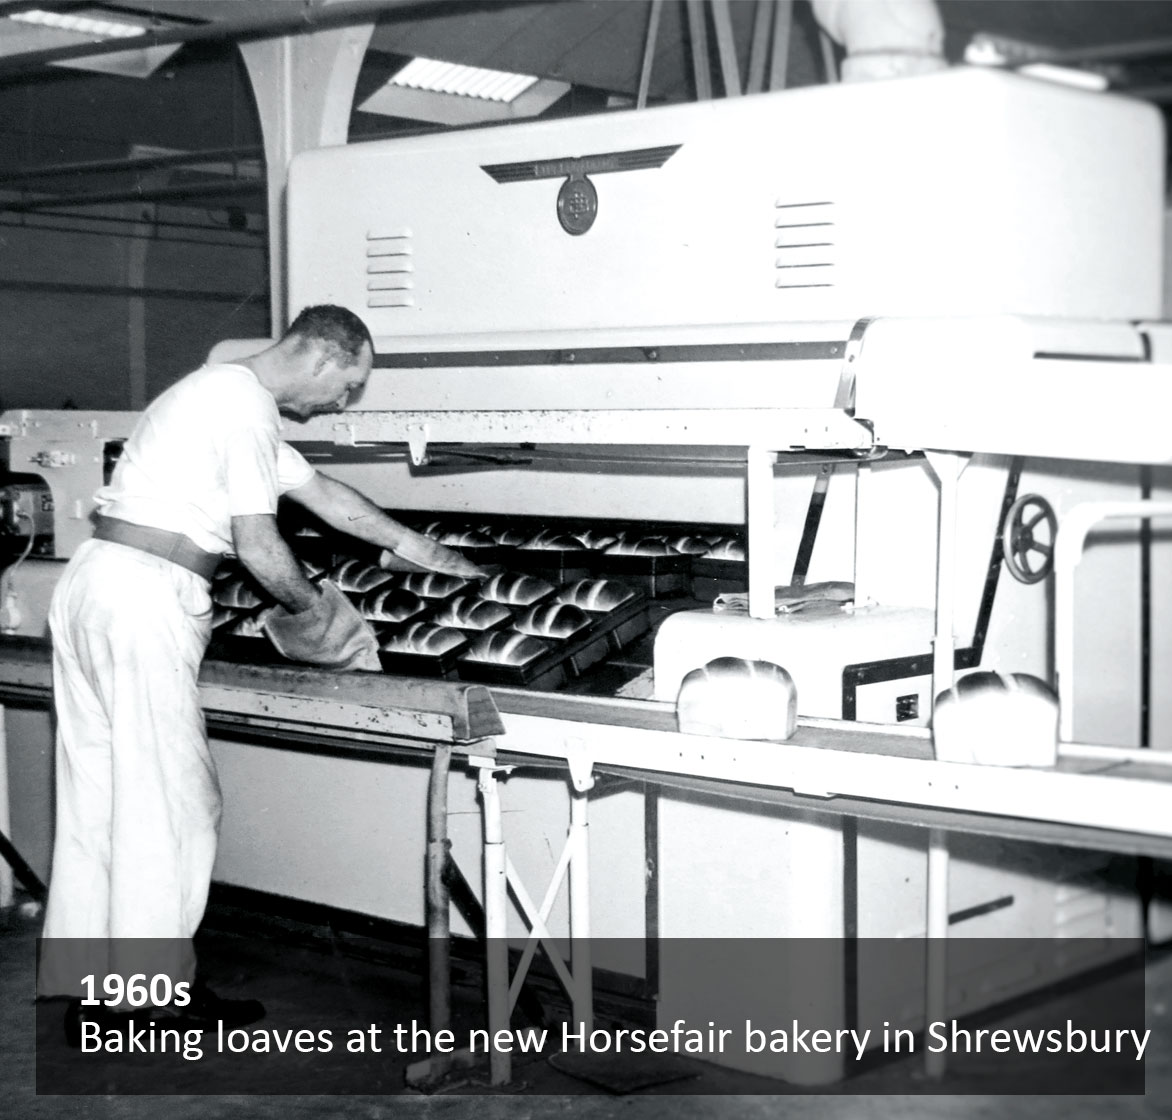 Baking loaves at the new Horsefair bakery in Shrewsbury